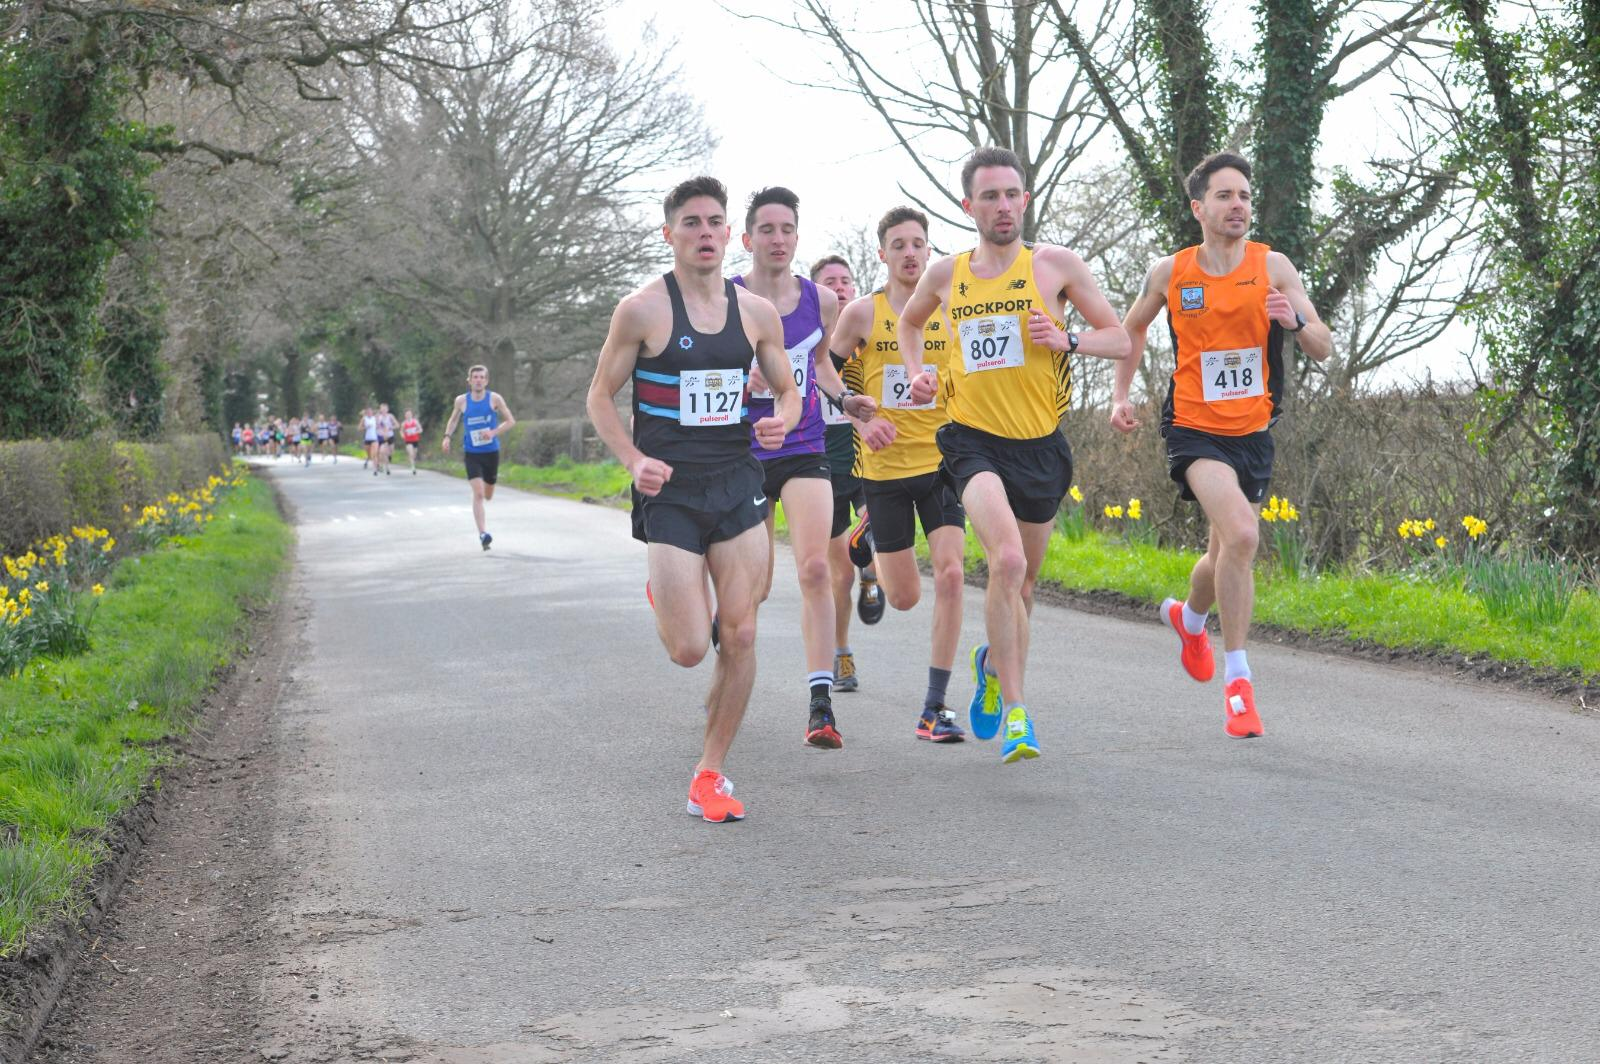 Cheshire 10k - Race Report Saturday 23rd March 2019